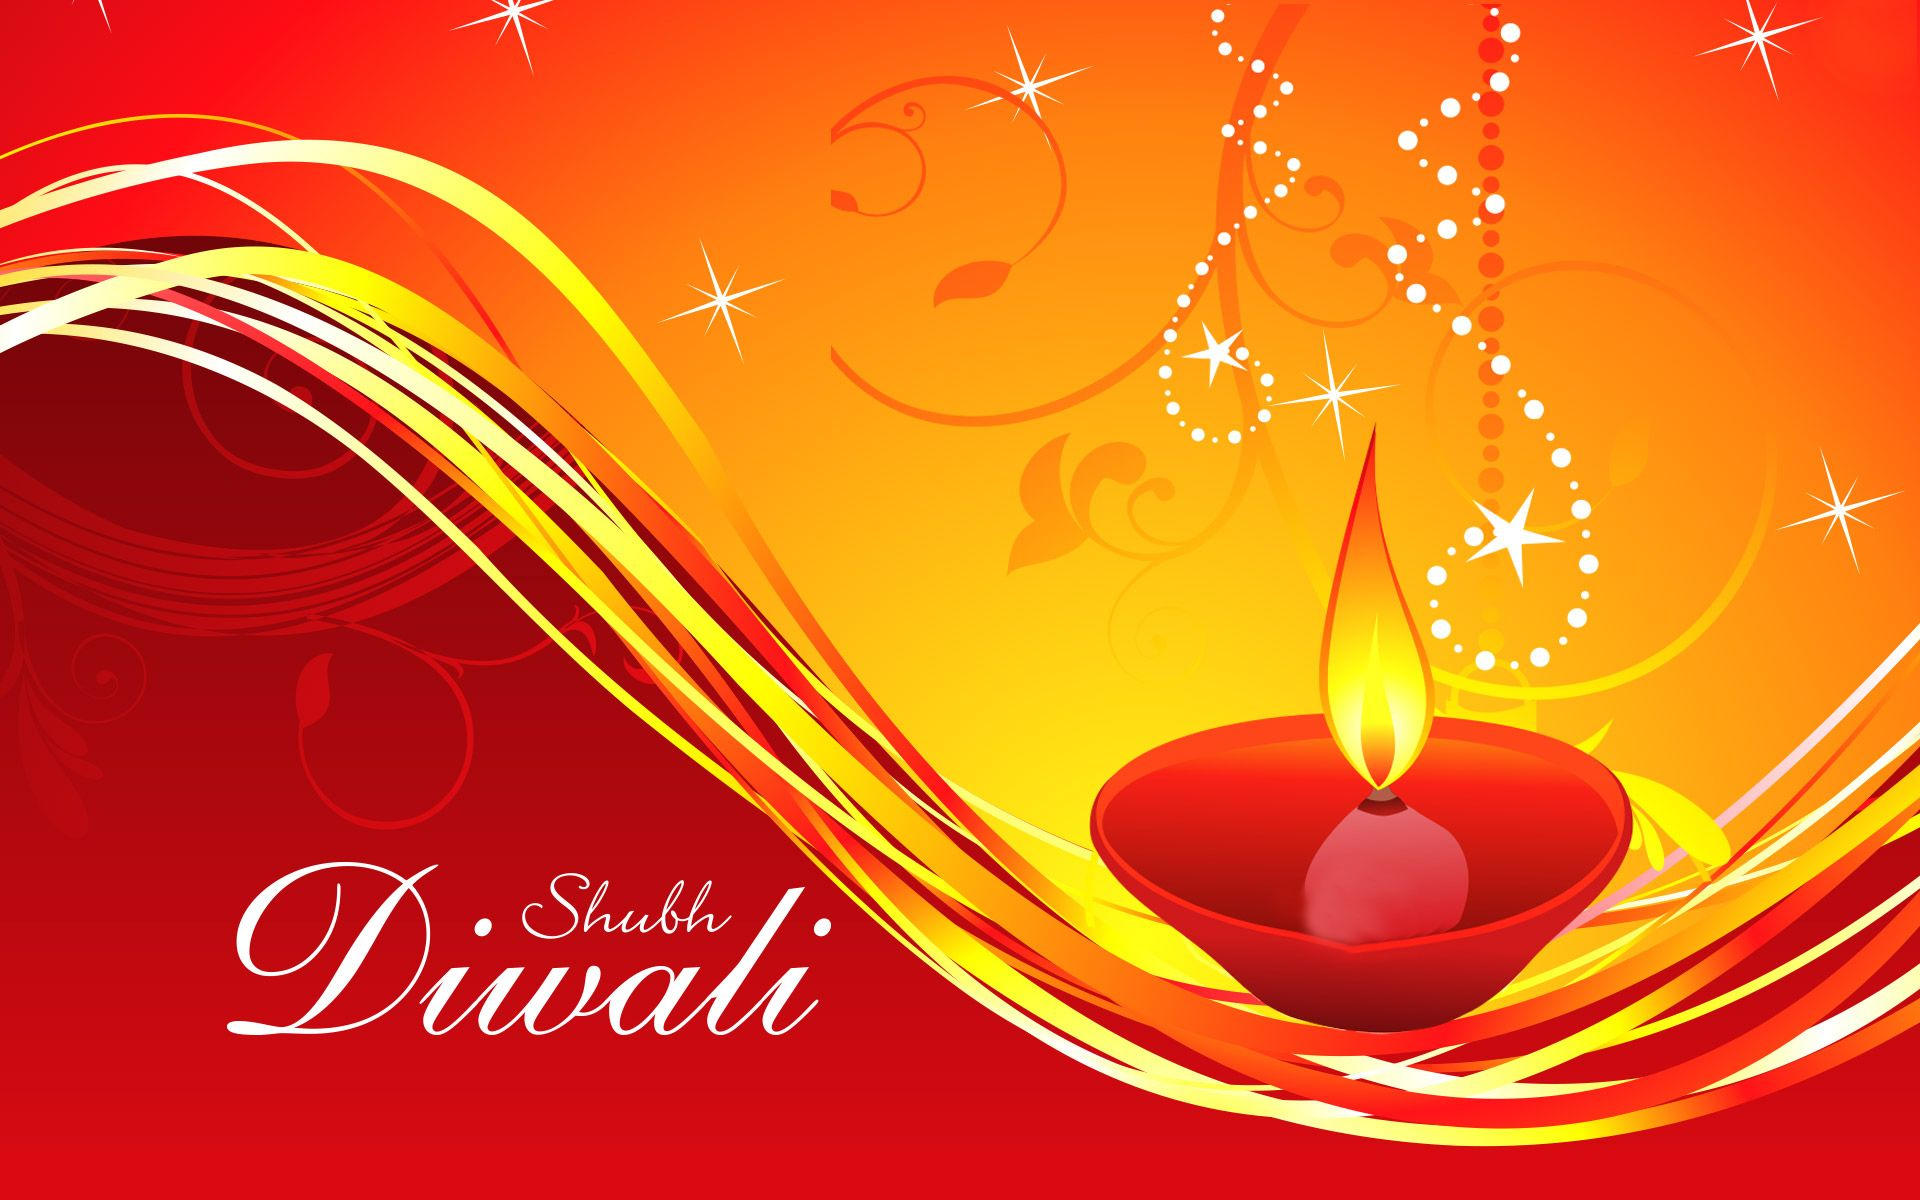 Happy diwali best wishes hd images happy diwali hd wallpapers happy diwali best wishes hd images kristyandbryce Choice Image